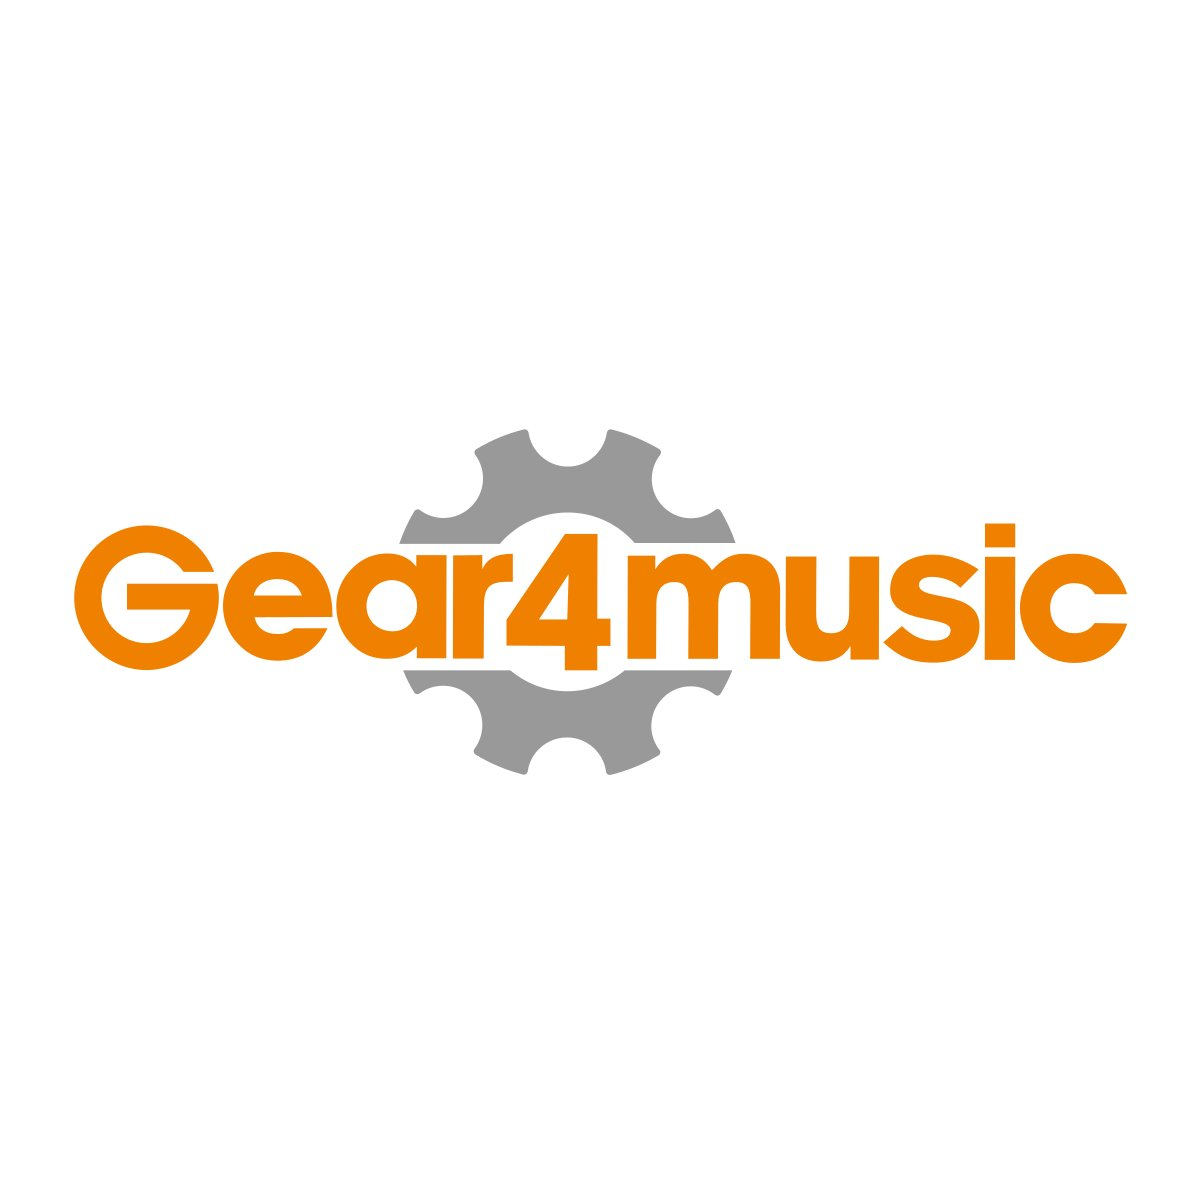 Gitarstreng Winder fra Gear4music